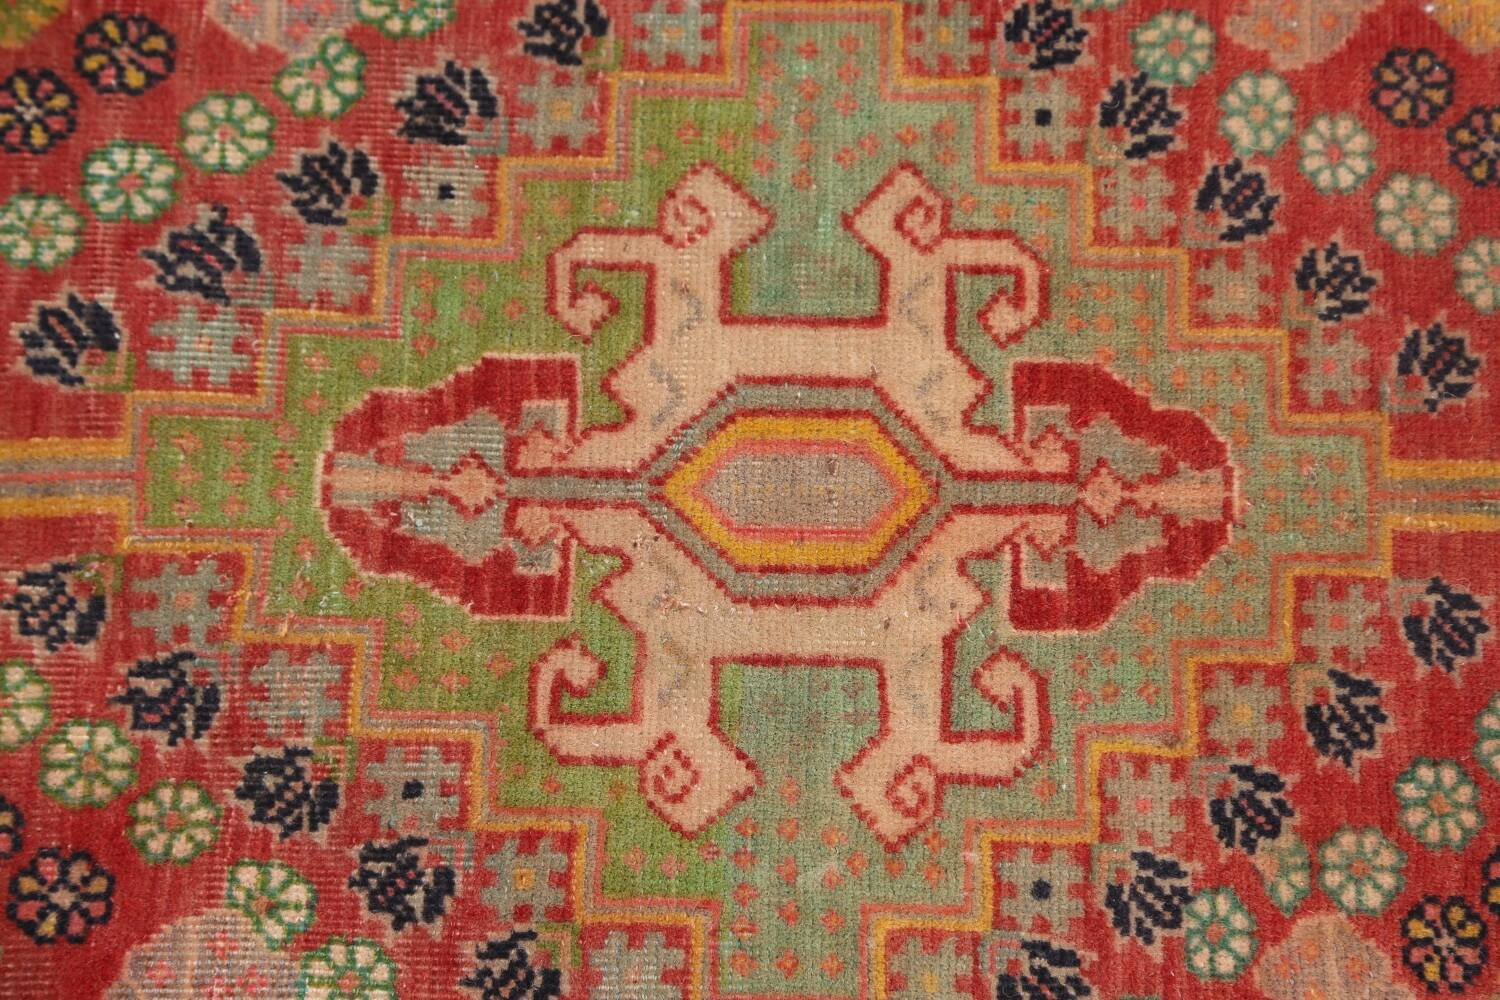 Antique 100% Vegetable Dye Abadeh Persian Rug 2x2 Square image 7